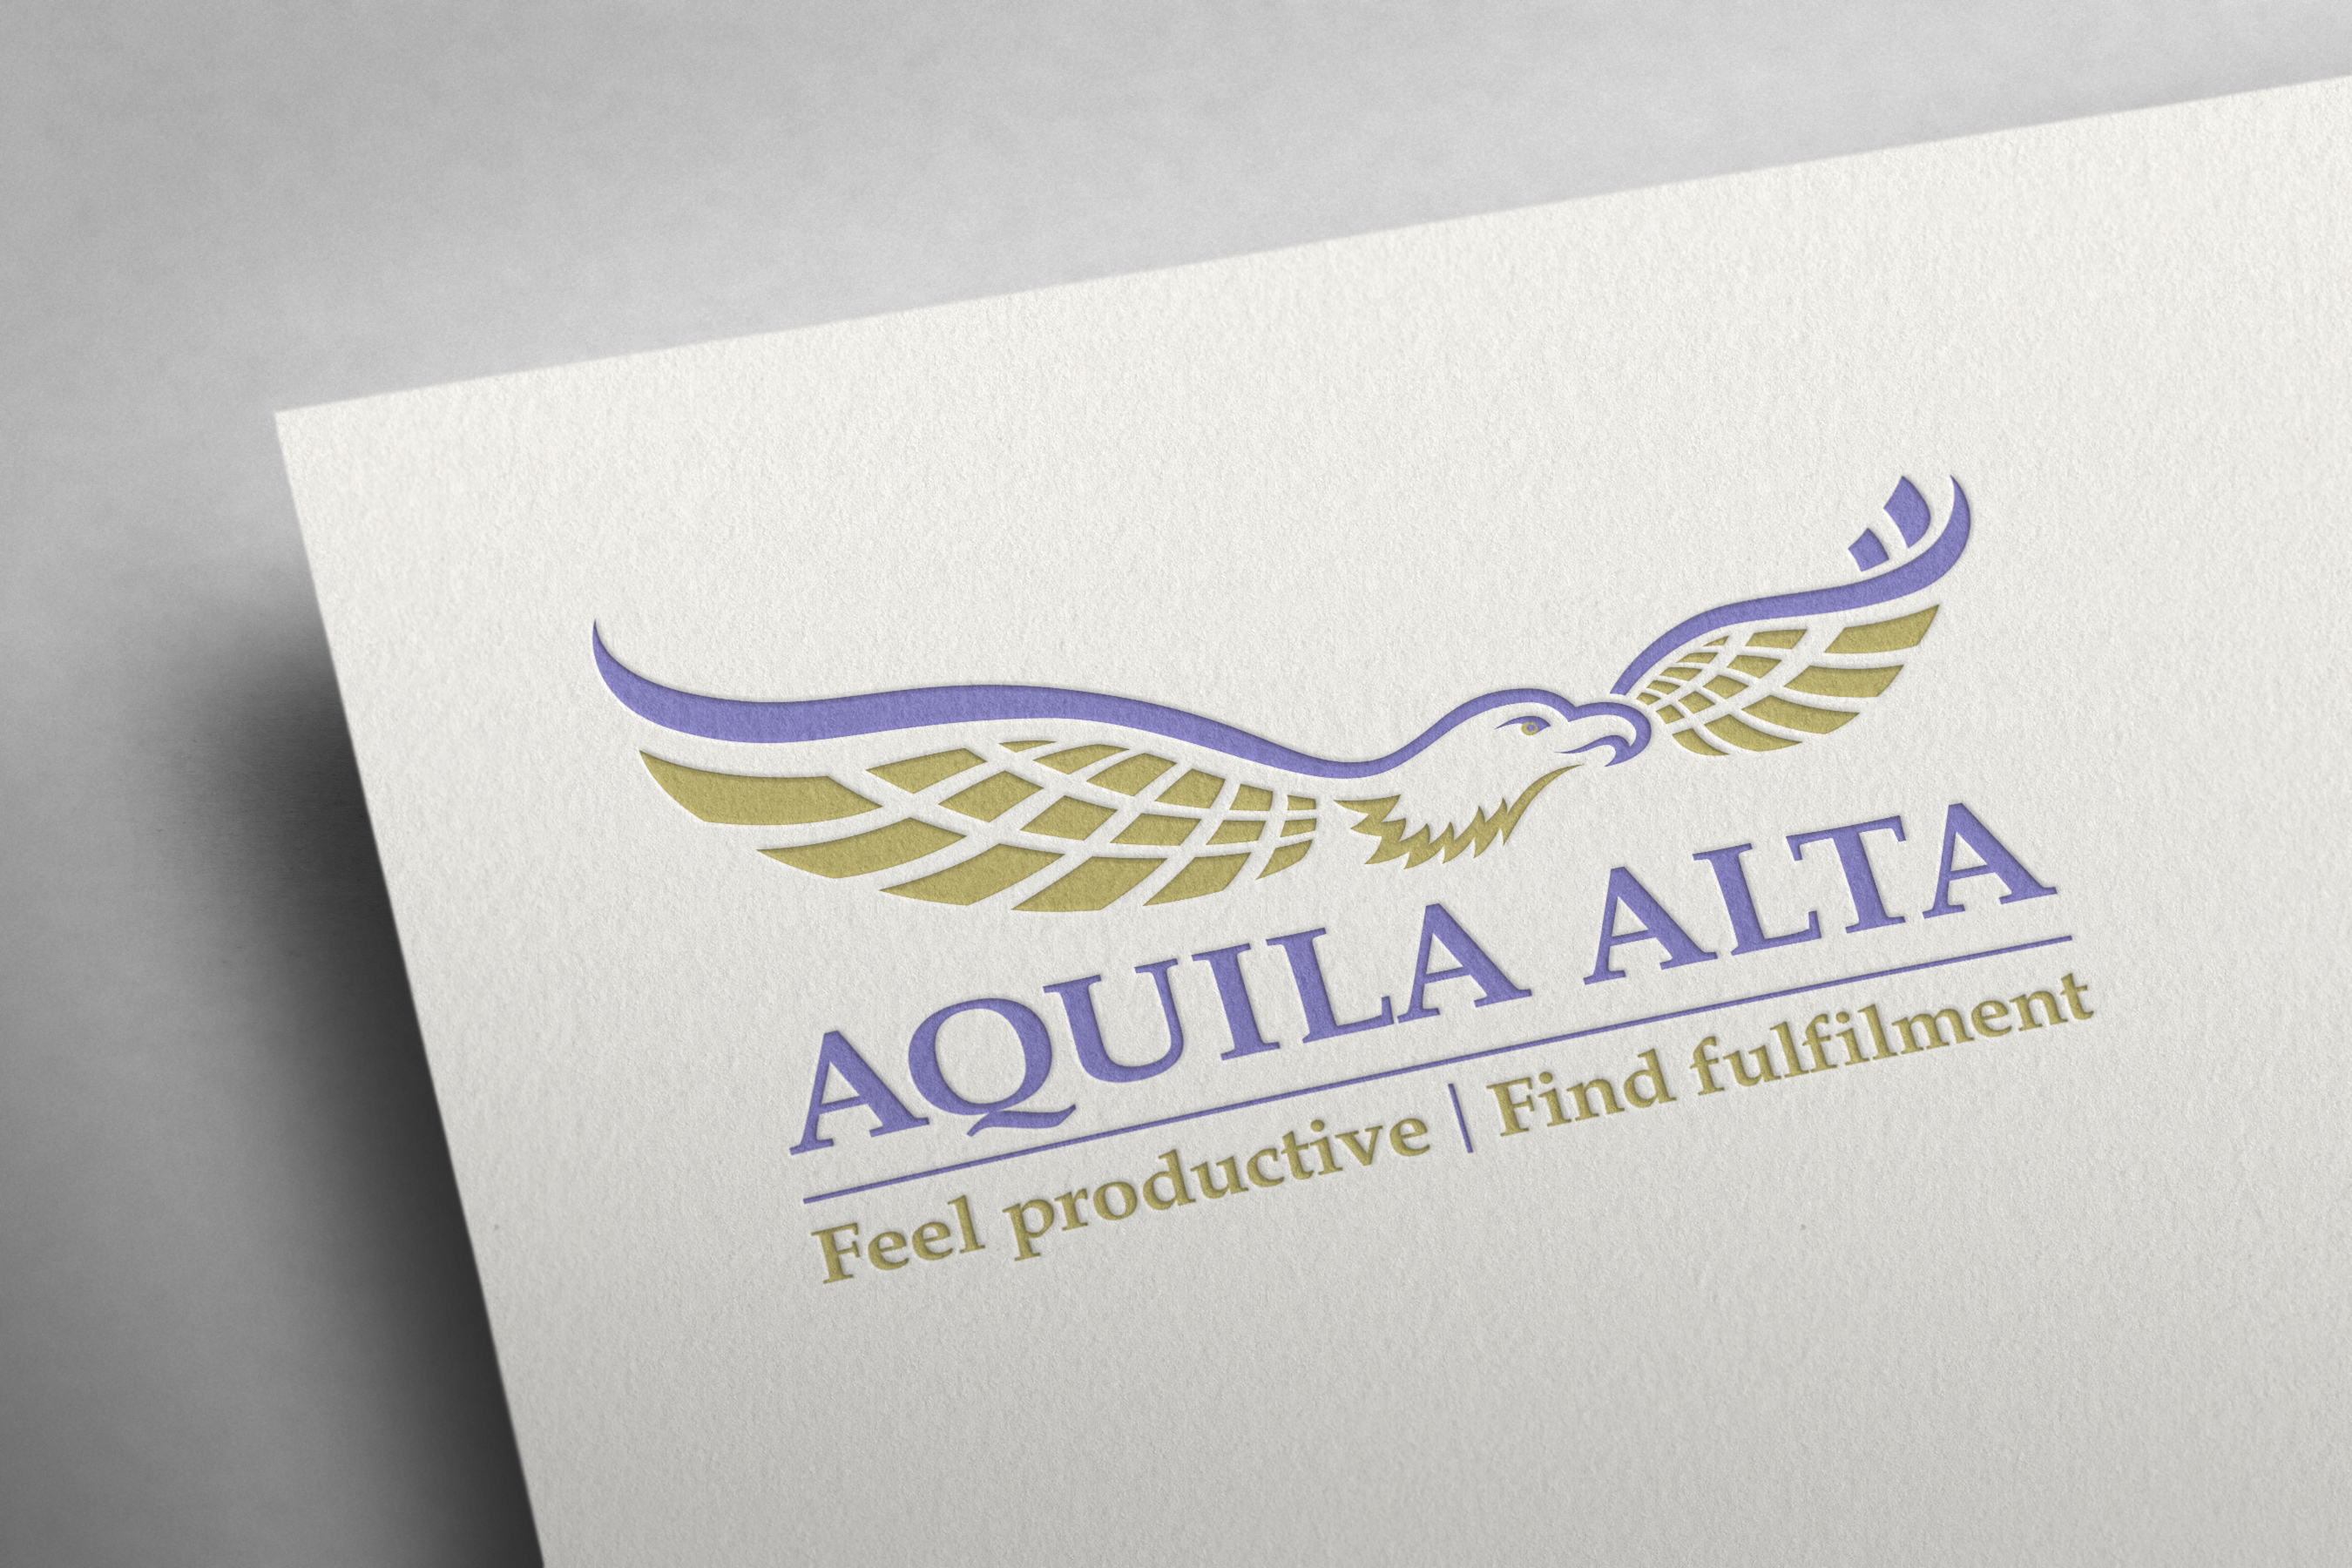 Aquila Alta productivity Logo and branding campaign in Canterbury NZ